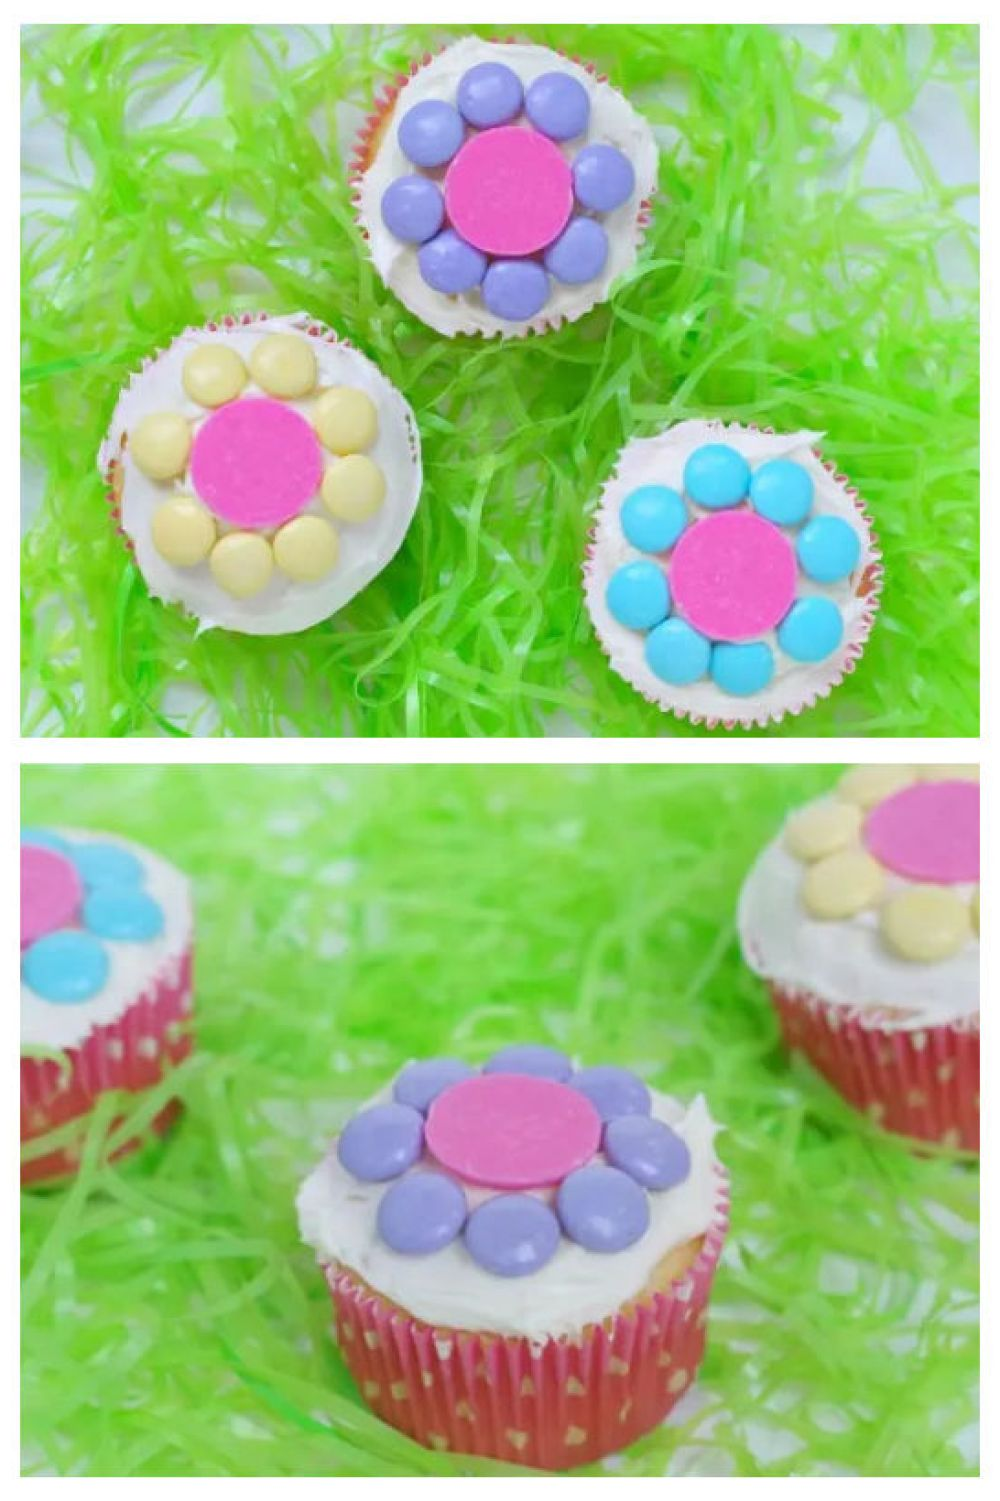 It's time to have some fun in the kitchen with the kids. These easy Spring flower cupcakes can be whipped up in no time at all, and the kids can have a great time designing their flowers. They are also perfect to organize for an Easter celebration.